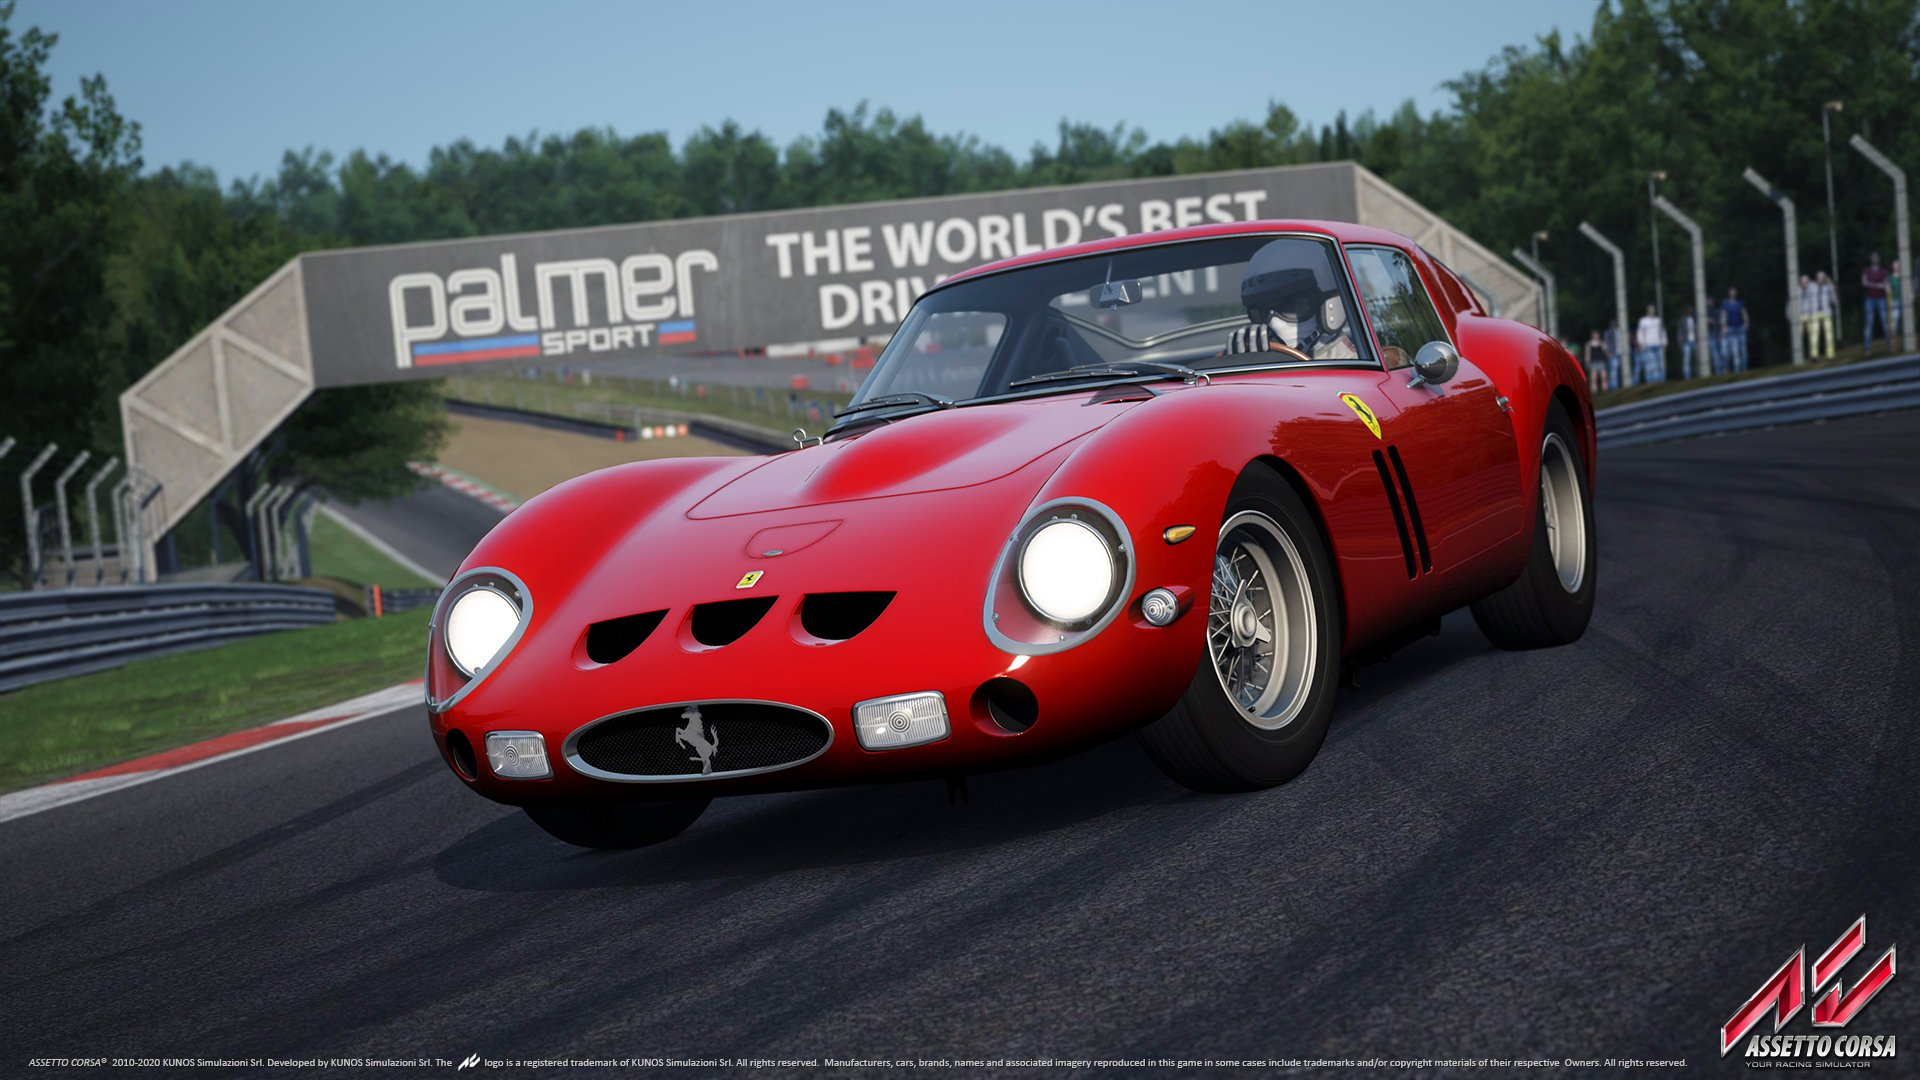 Assetto Corsa Ferrari 250 GTO wallpaper